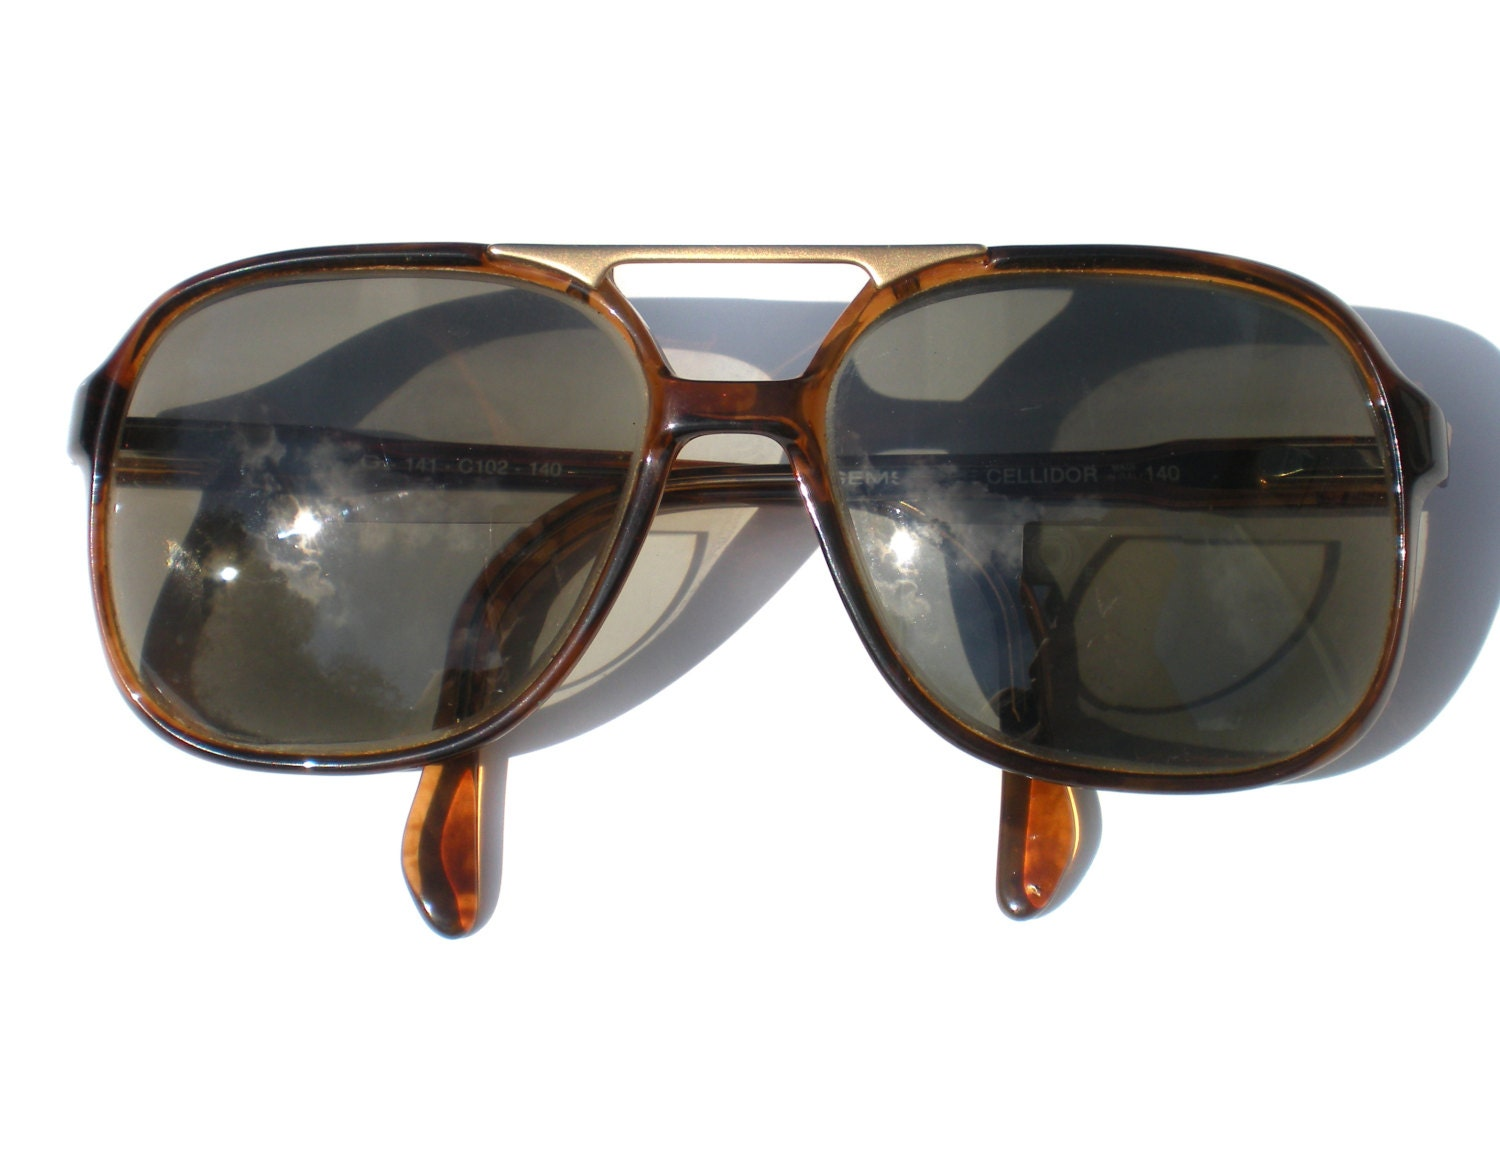 Mens 80s Glasses or Sunglasses Brown Frames Large with Gold